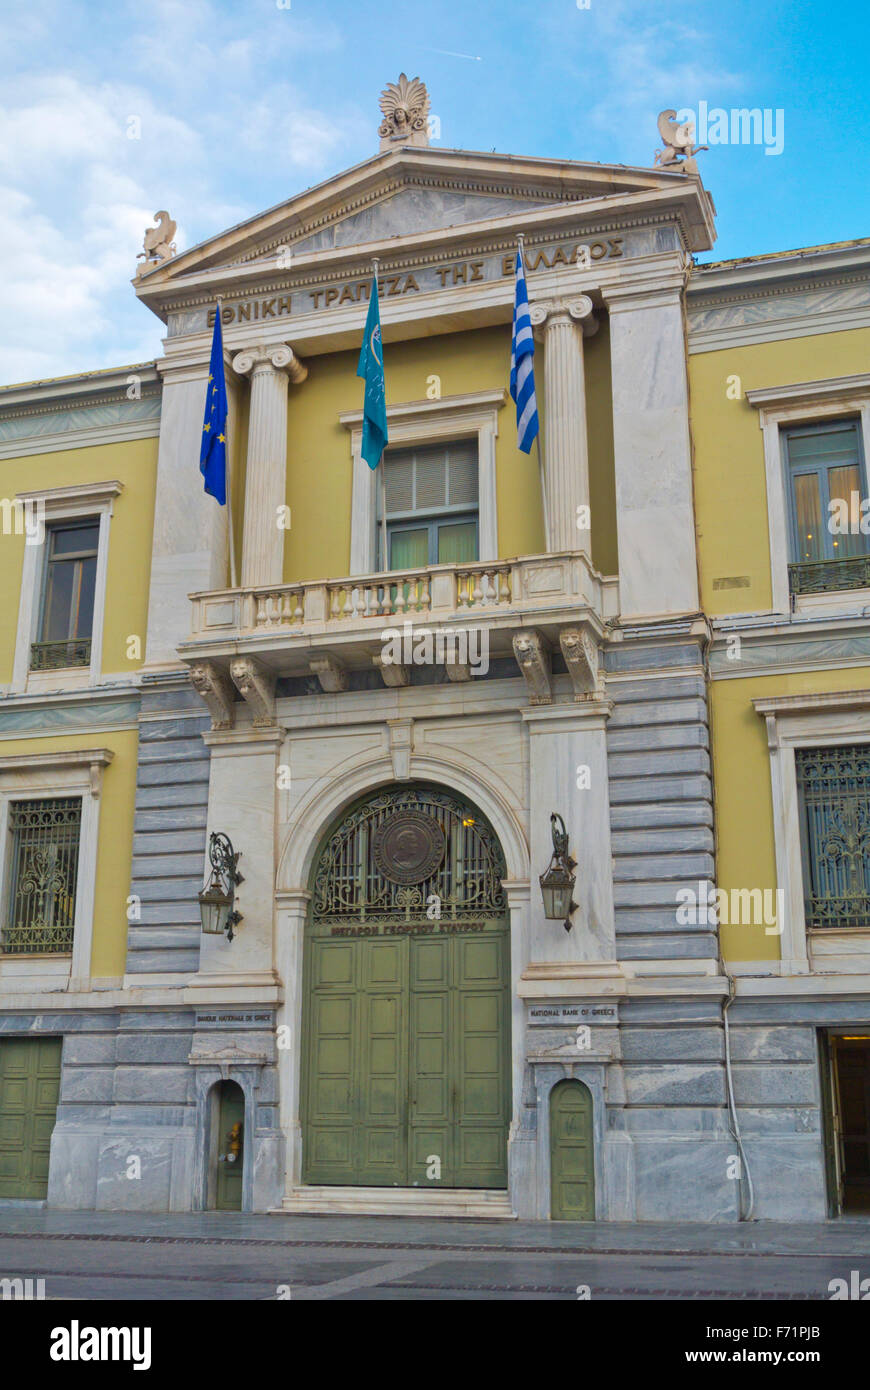 National Bank of Greece, Platia Kotzia, Athens, Greece - Stock Image